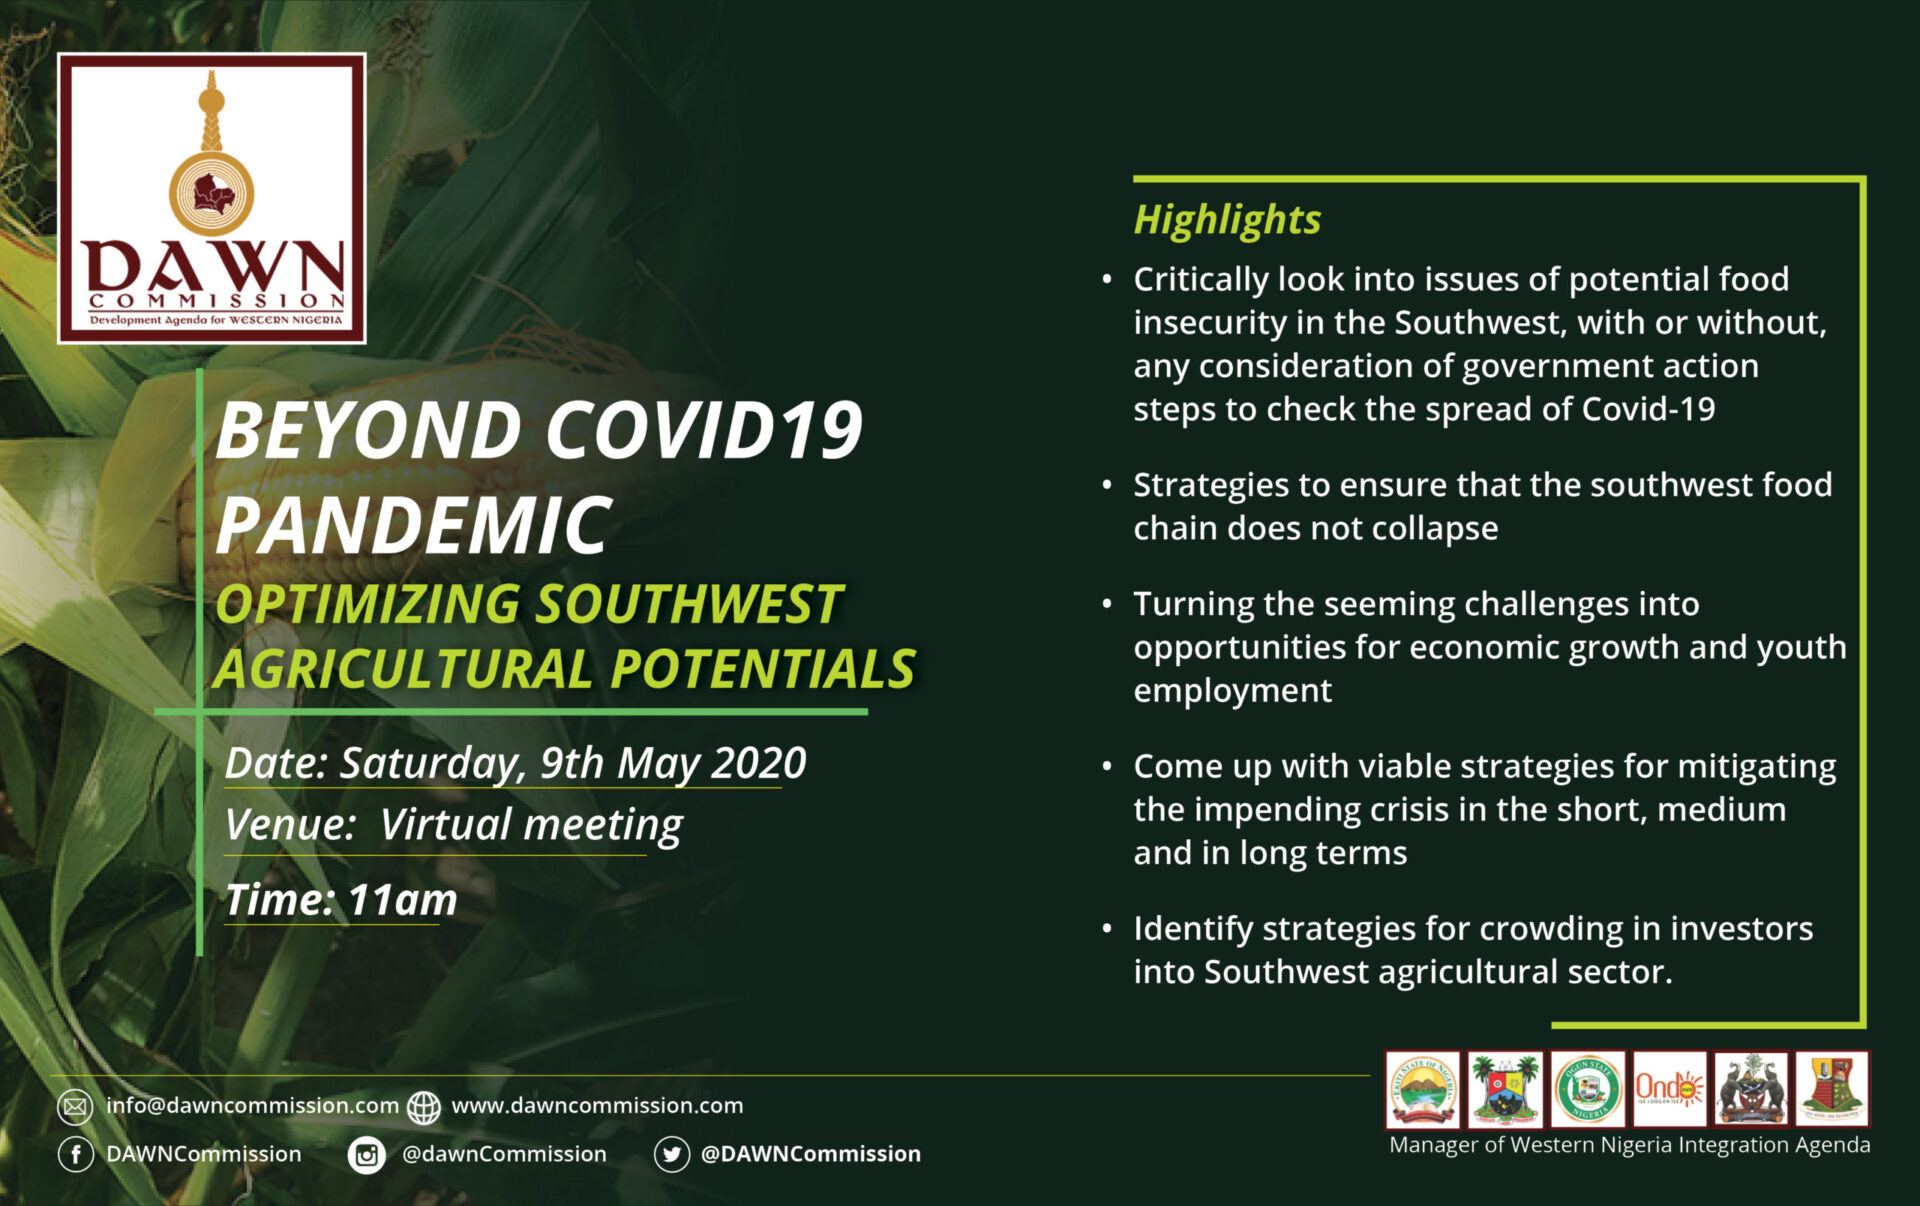 POST-COVID19 PANDEMIC- Optimizing Southwest Agricultural Potential